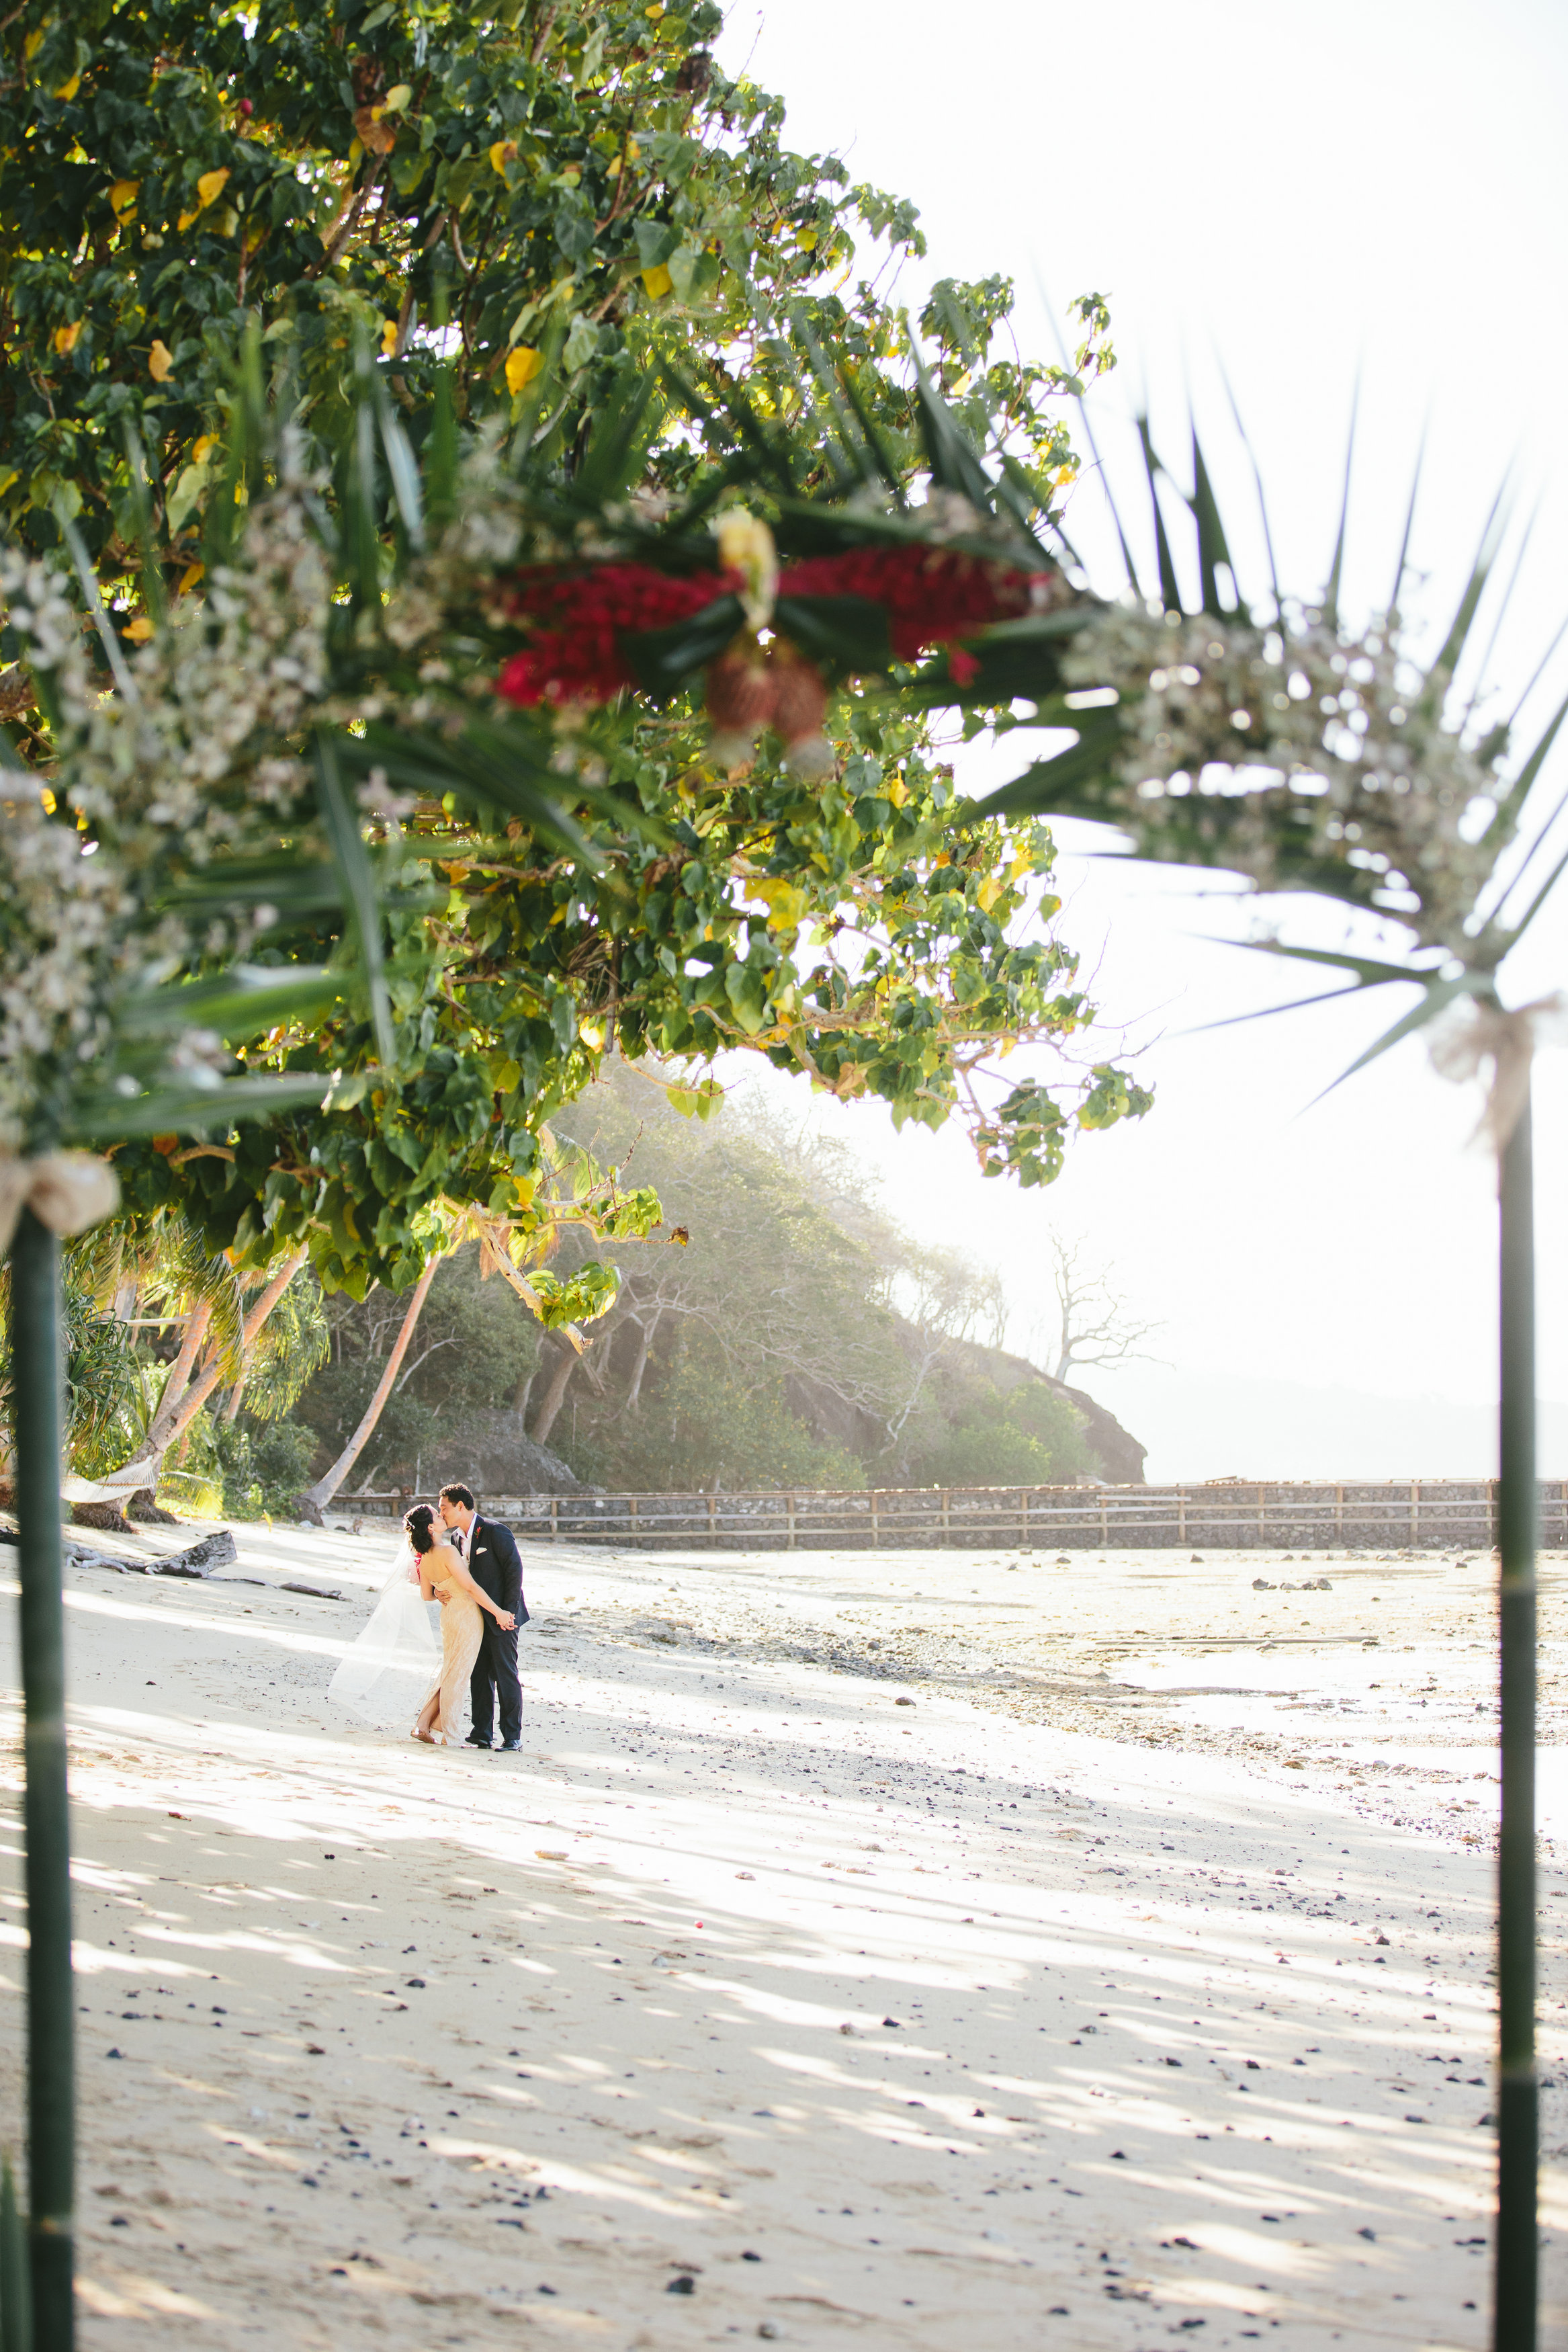 Red Ginger Arch - Fiji Wedding Elopement - The Remote Resort Fiji Islands - Wedding Arch decorations